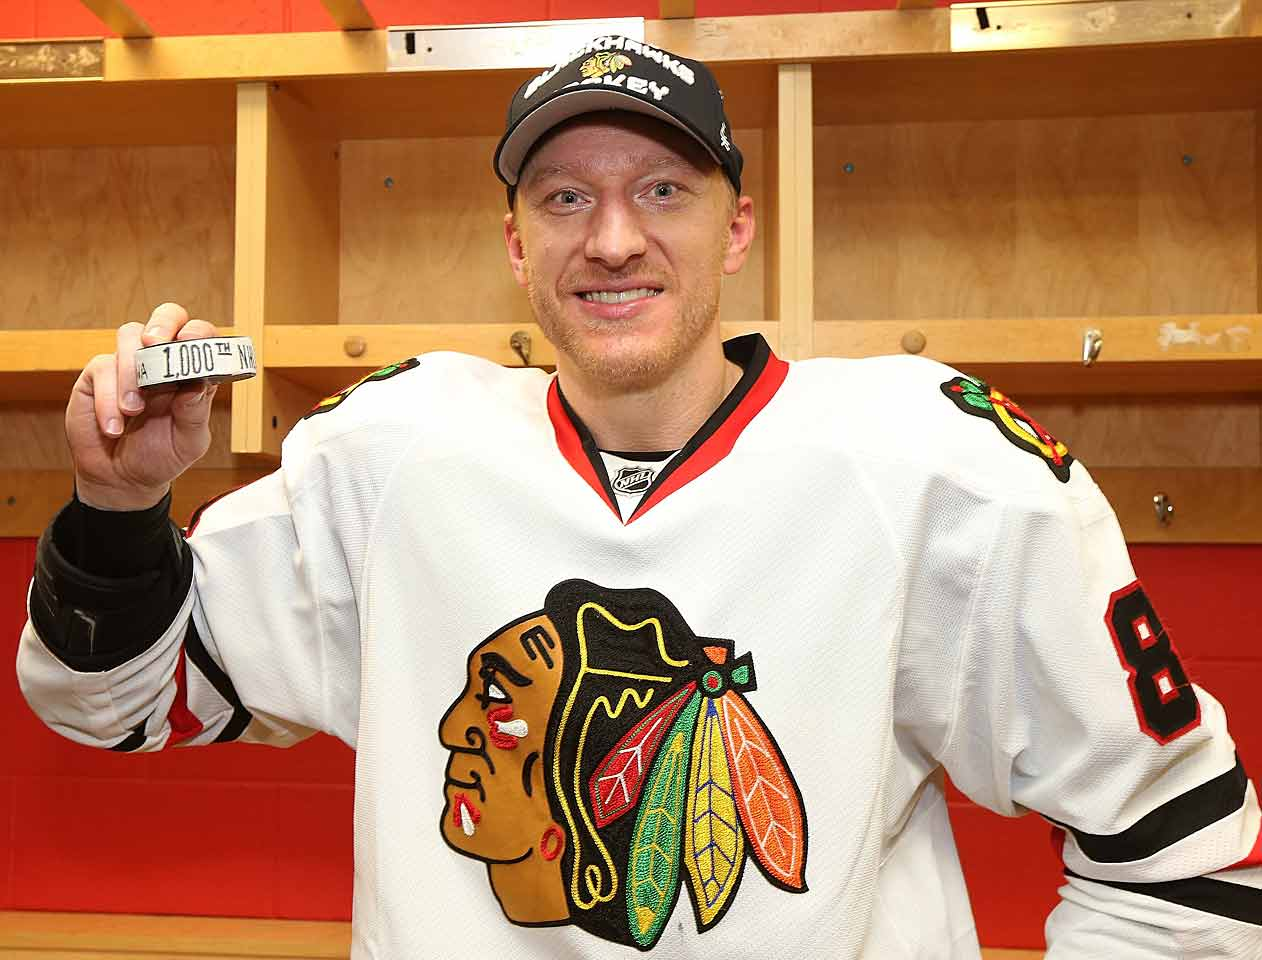 Marian Hossa returns to Ottawa, where he began his career in 1997-98, to play his 1,000th NHL game. With an assist on Jonathan Toews' first period goal, Hossa notches his 999th point and adds a goal in Chicago's 5-4 shootout win to become the 80th player in NHL history to score 1,000 points.